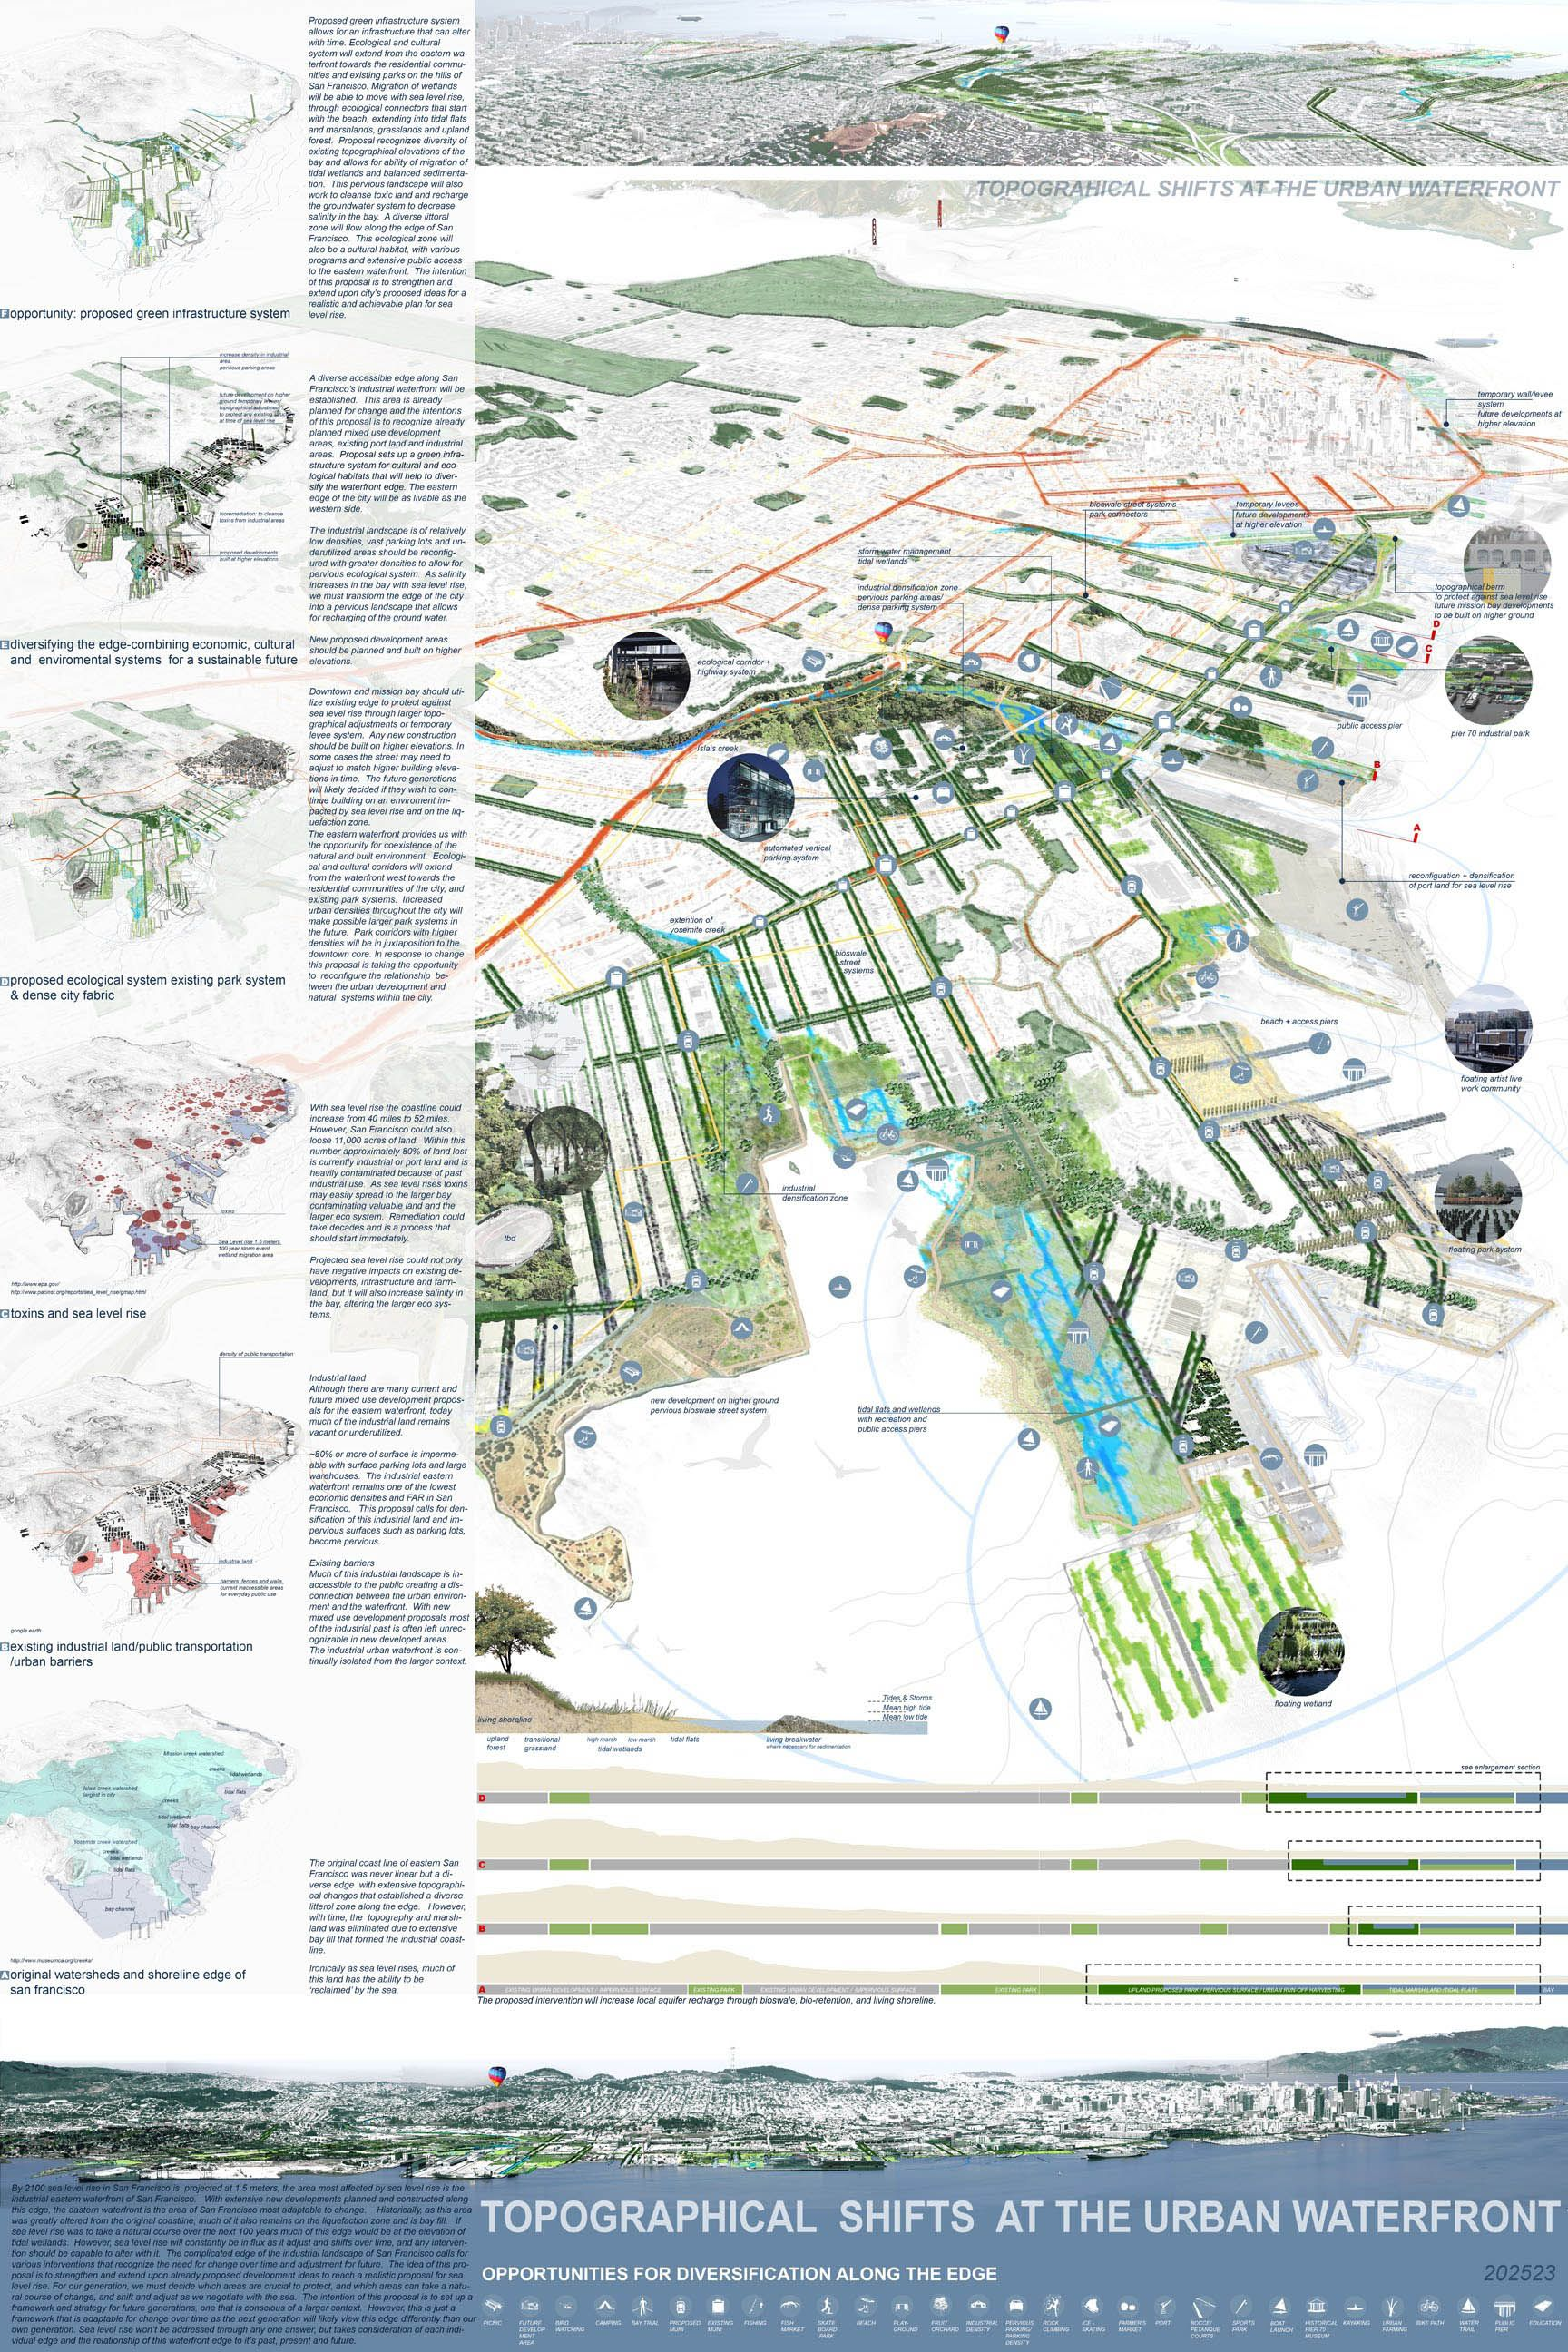 Topographical Shifts At The Urban Waterfront By Wright Huaiche Yang And J Lee Stickles Click For Large PDF